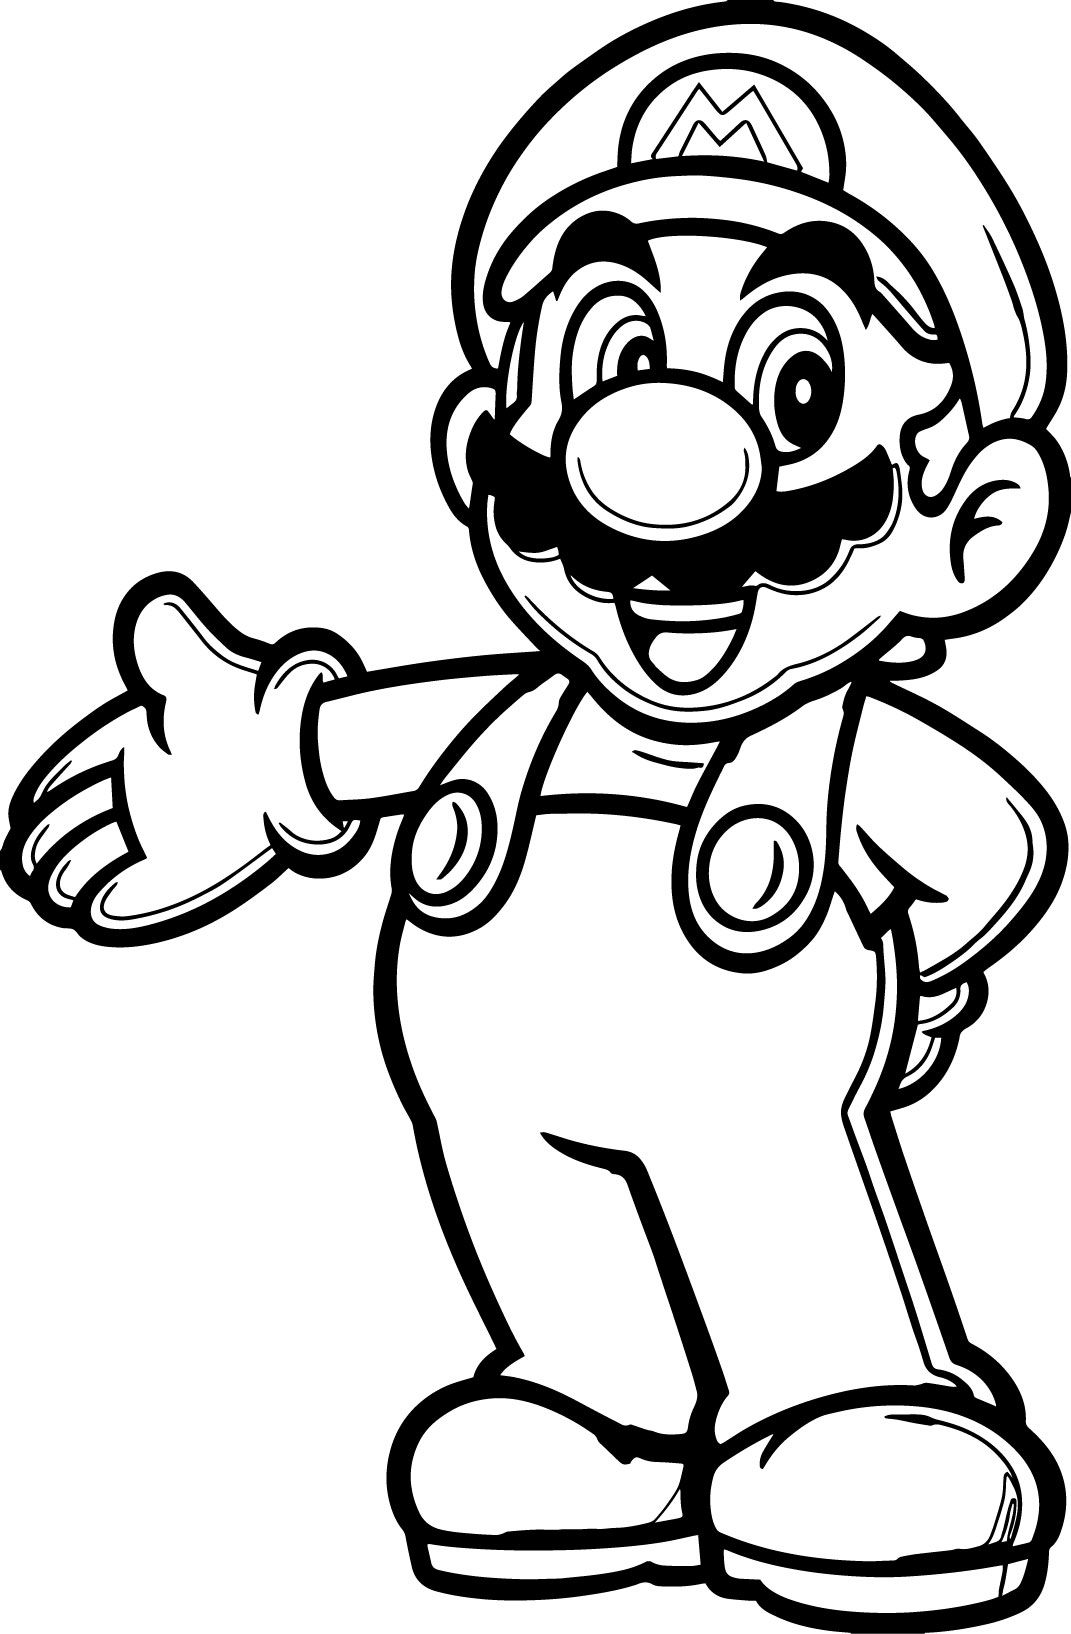 super mario coloring pages - Super Mario Yoshi Coloring Pages